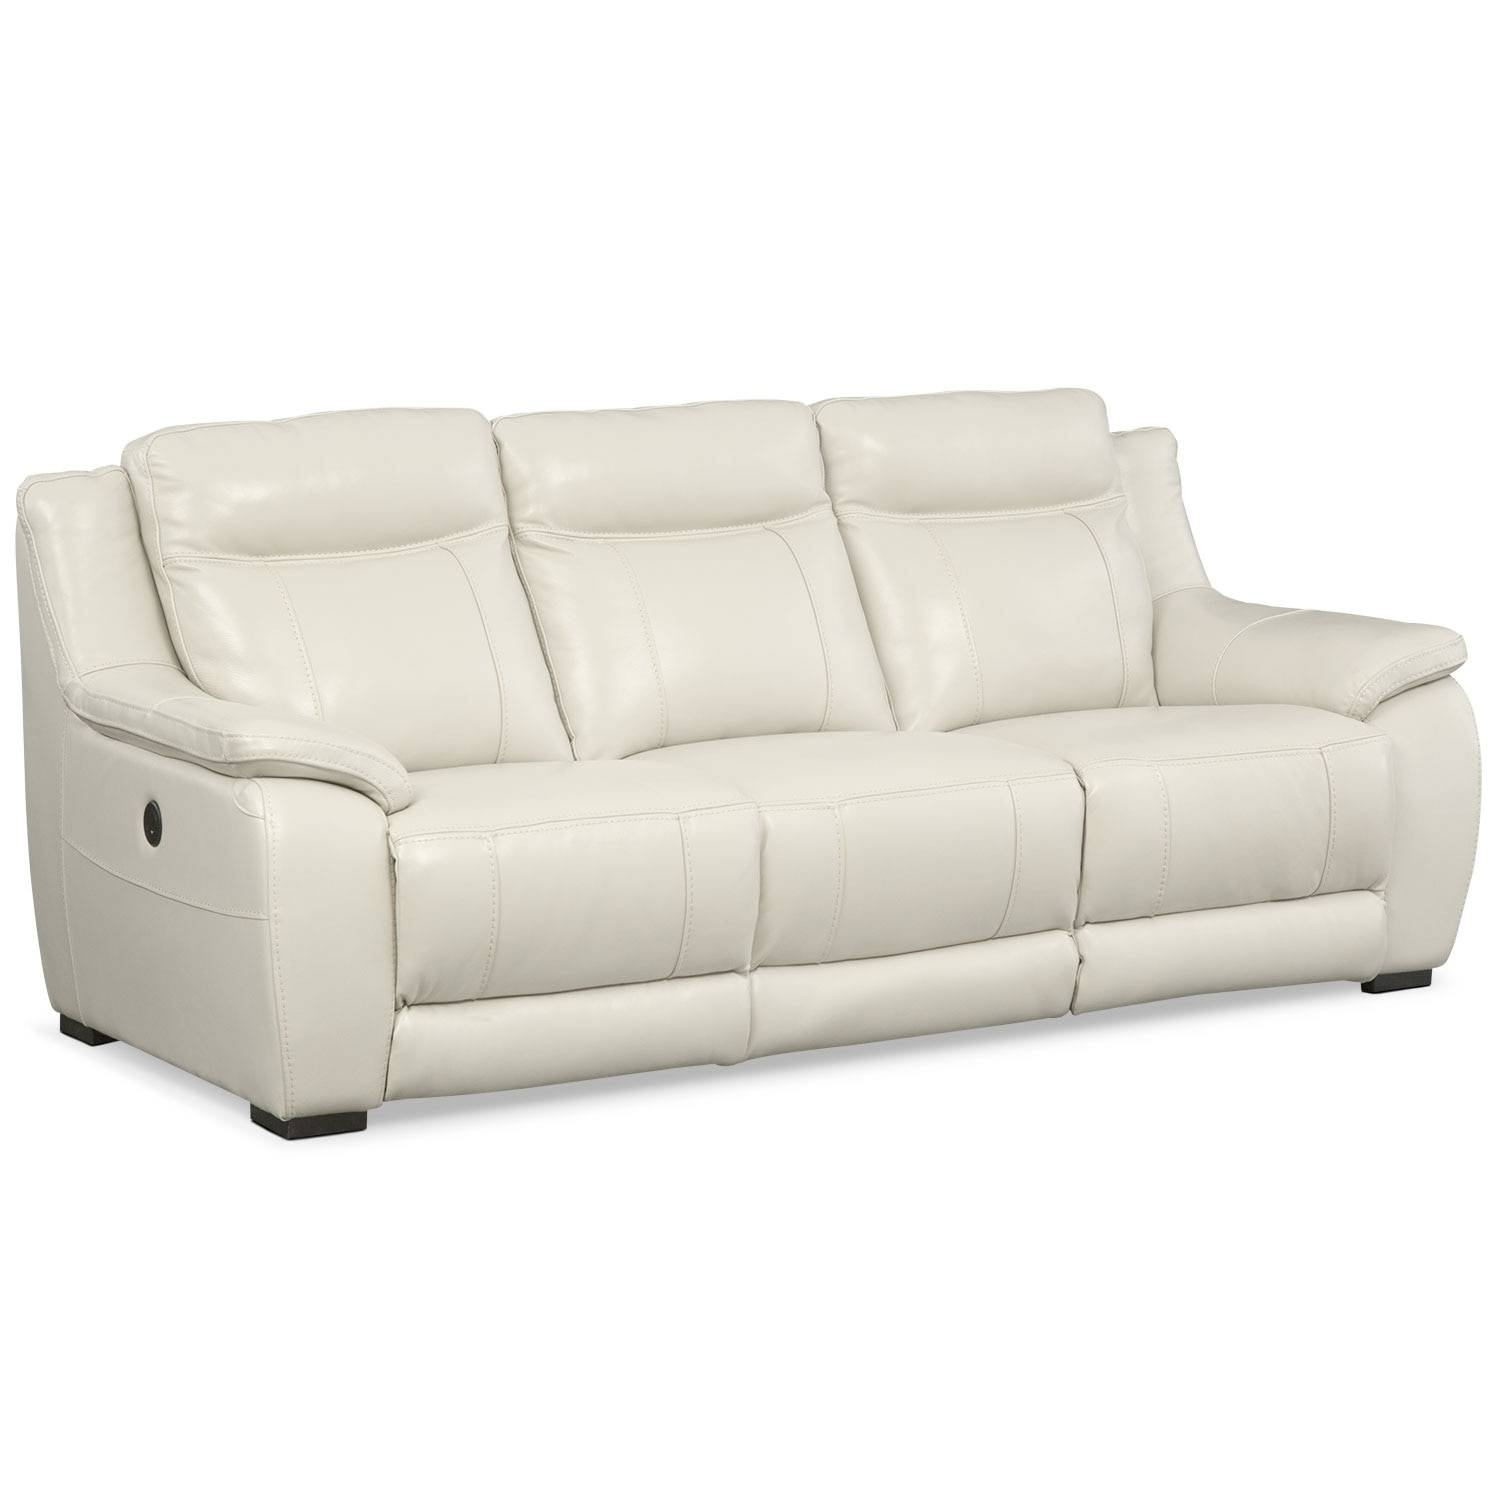 Value City Leather Couches Cheap Leather Sectionals Value City